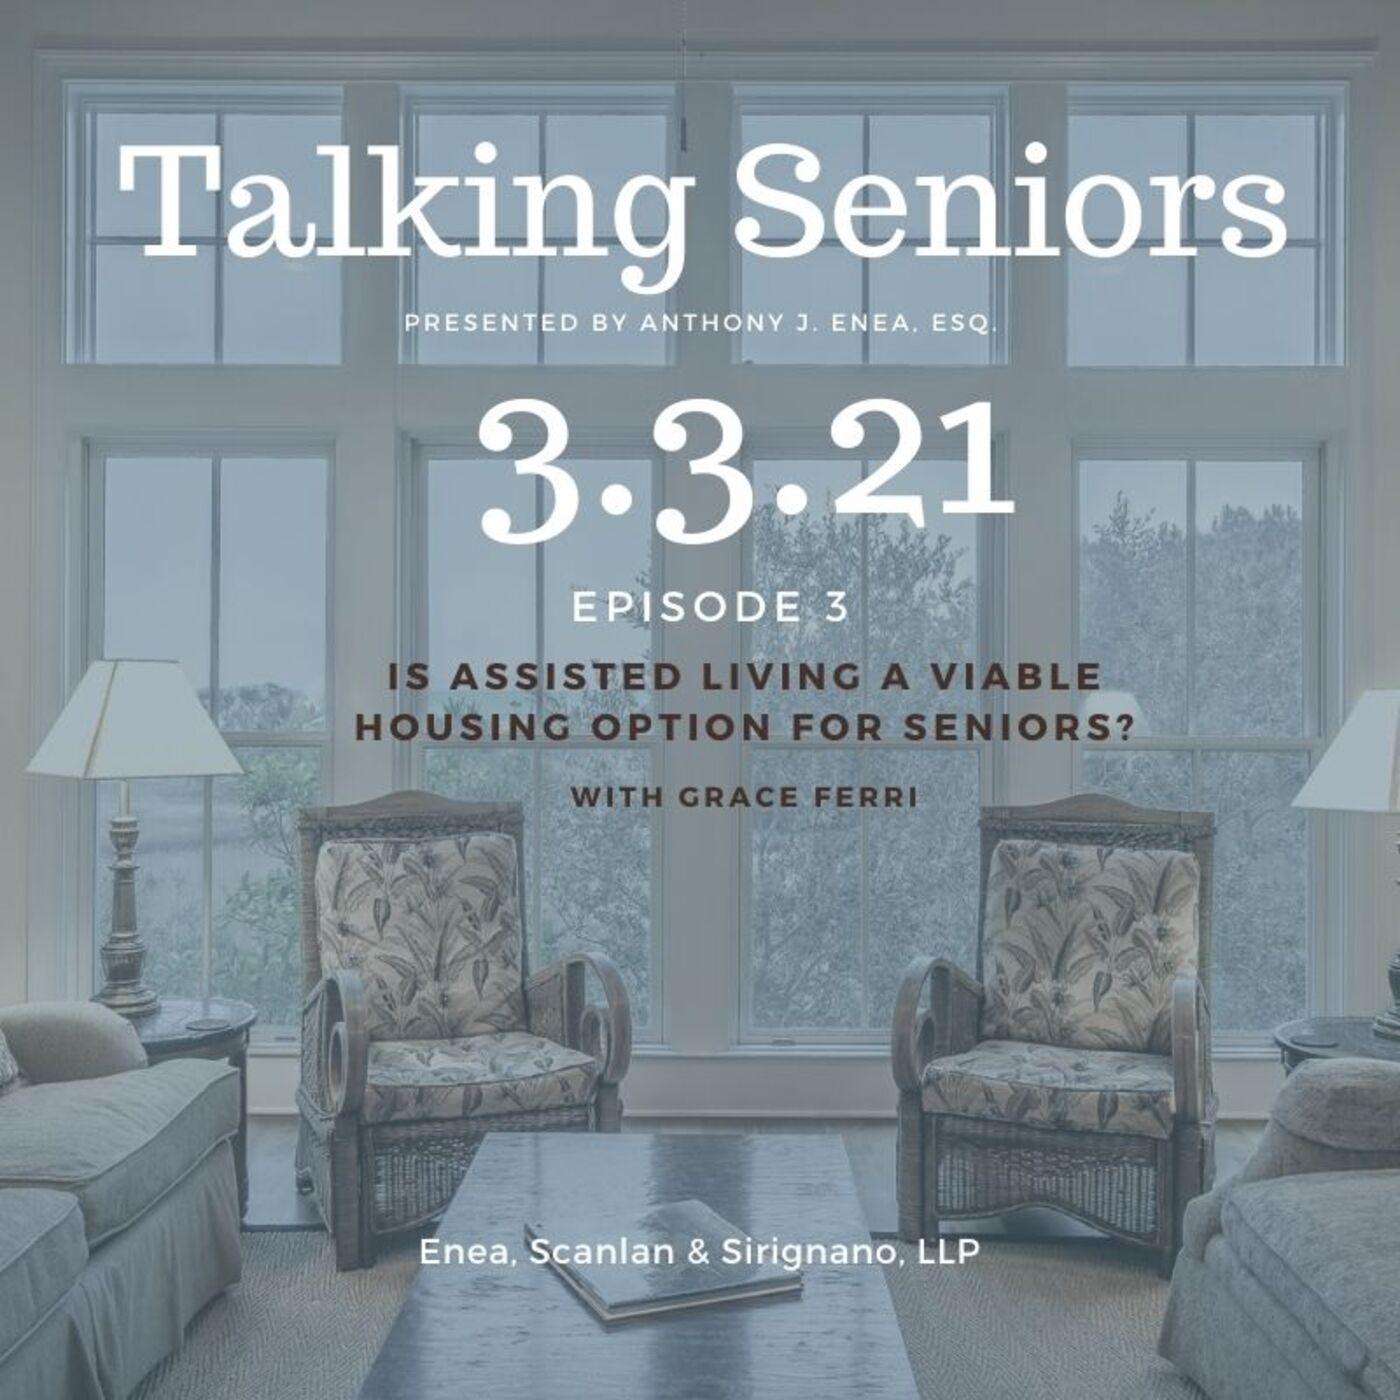 Episode 3: Is Assisted Living a Viable Housing Option for Seniors?